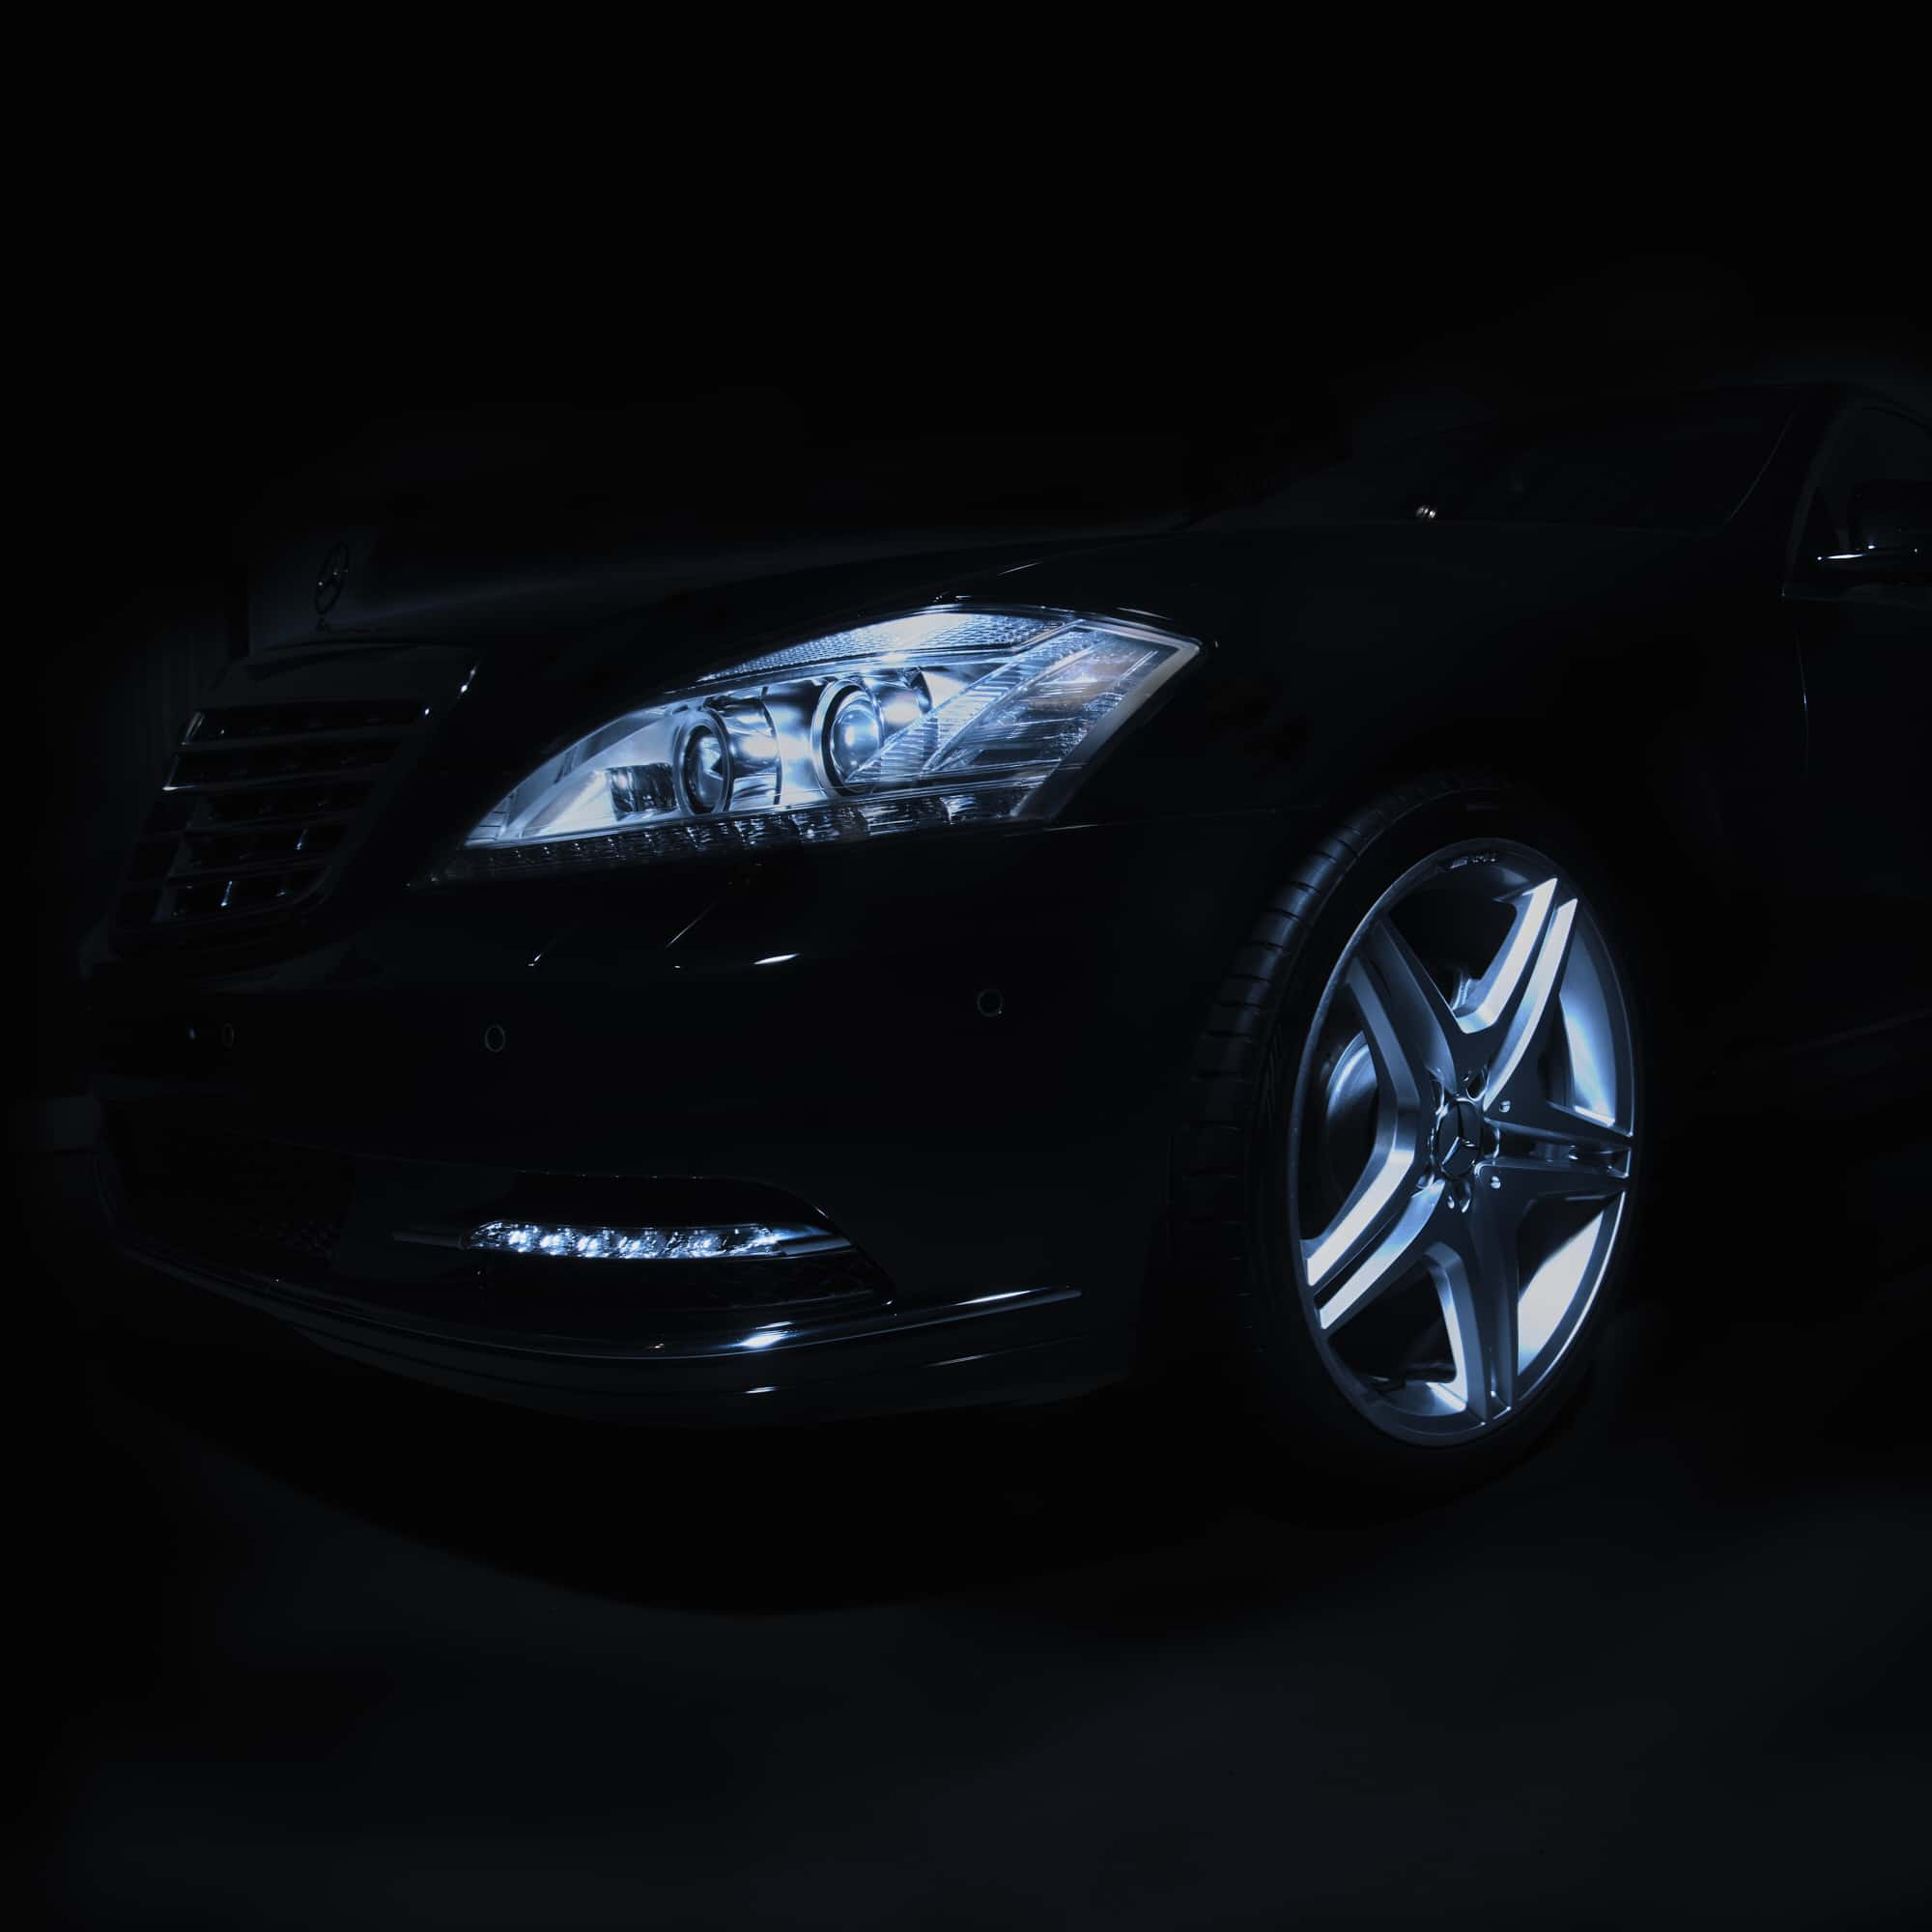 Mercedes, Lightpainting